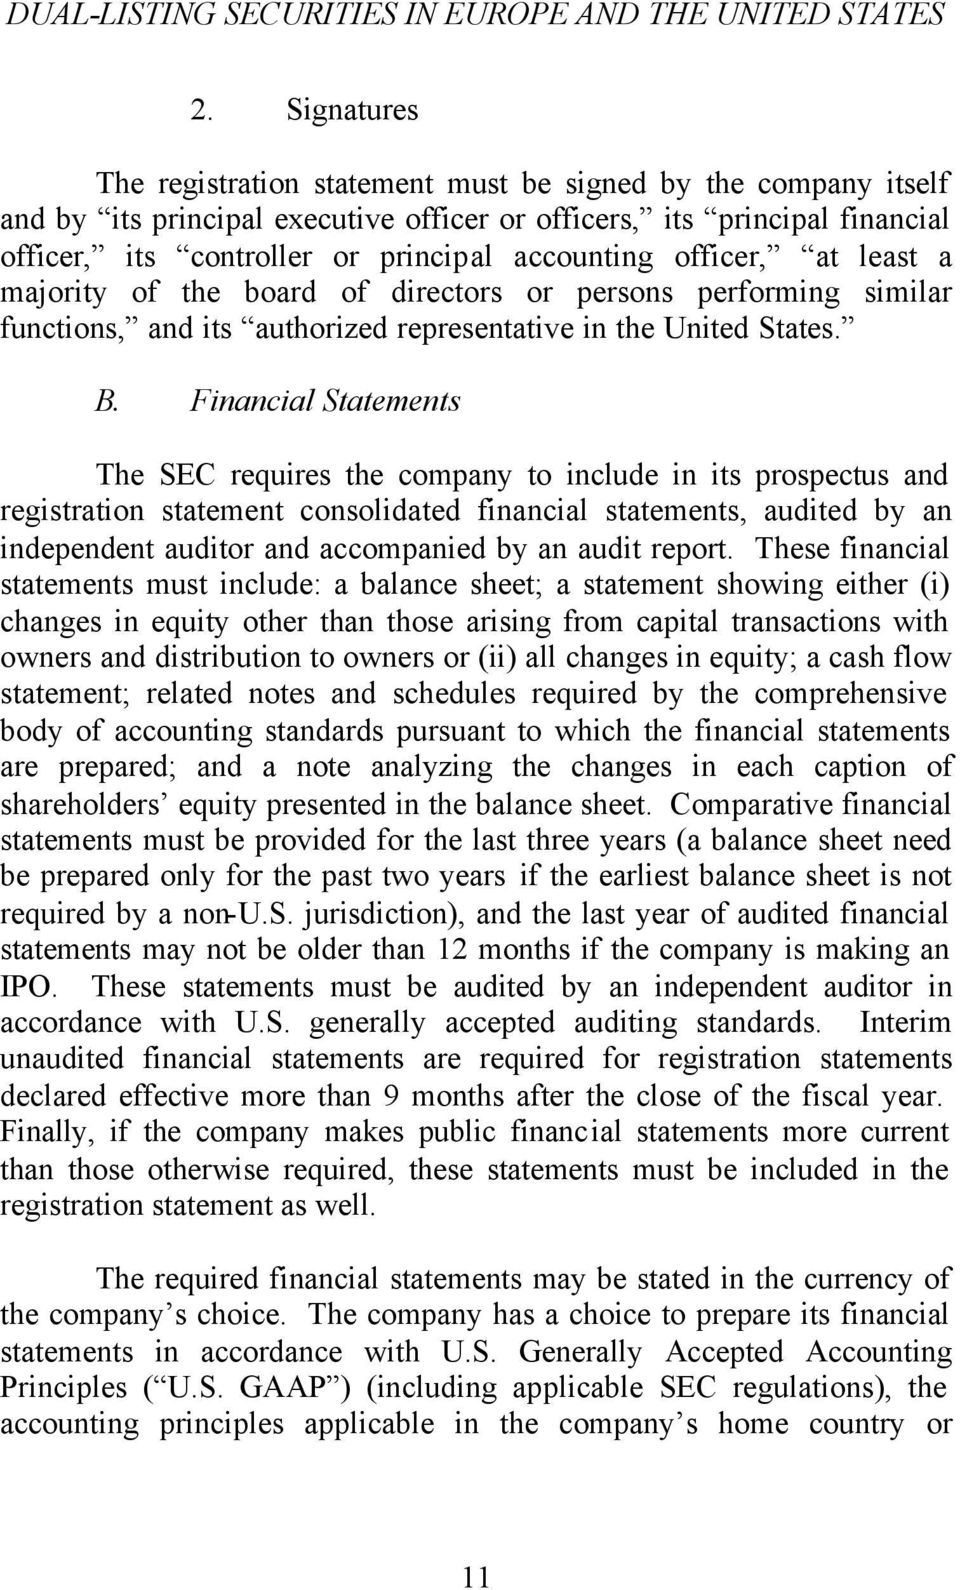 Financial Statements The SEC requires the company to include in its prospectus and registration statement consolidated financial statements, audited by an independent auditor and accompanied by an